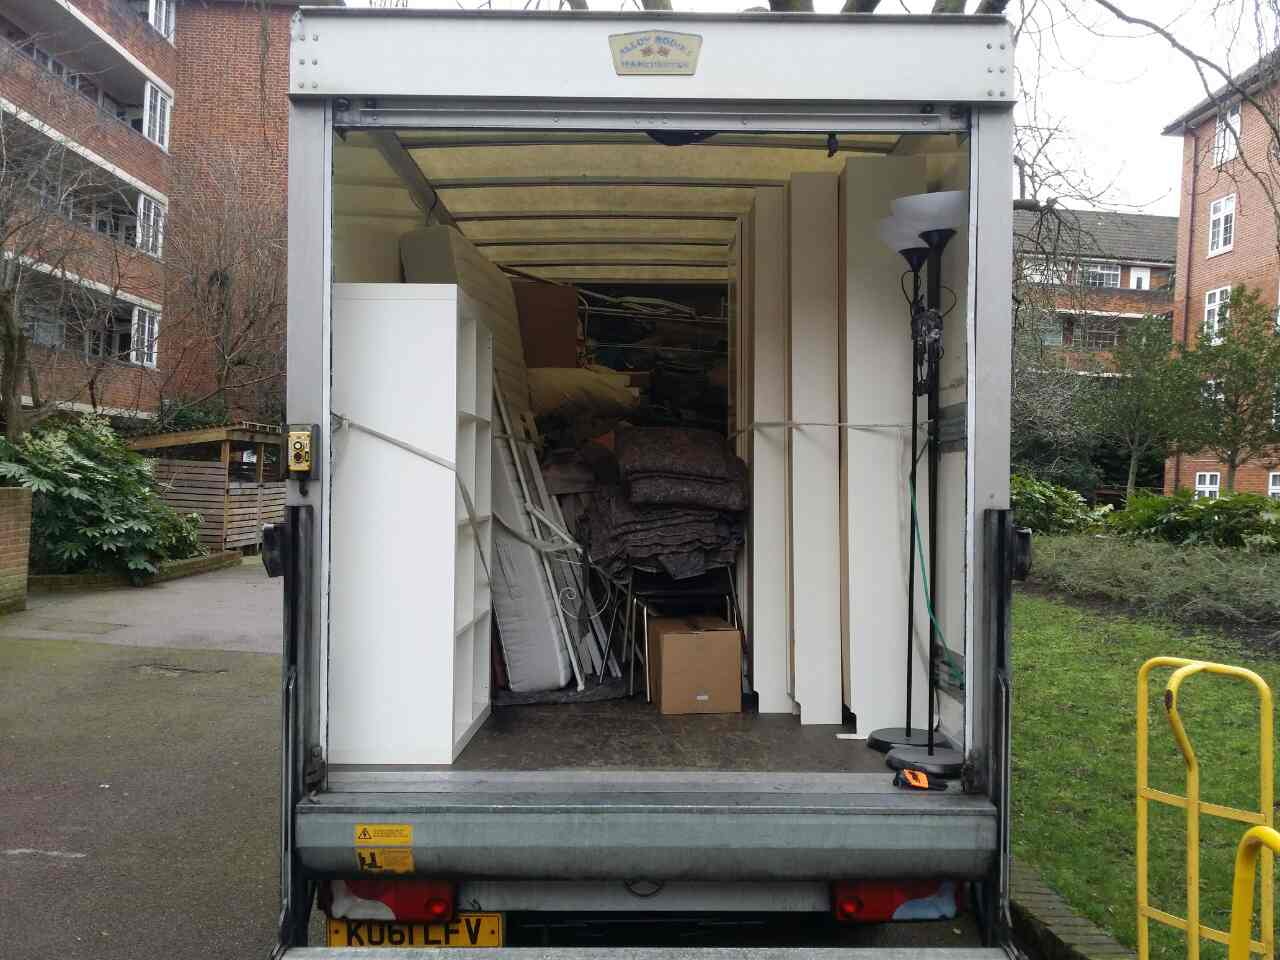 Stockwell movers services